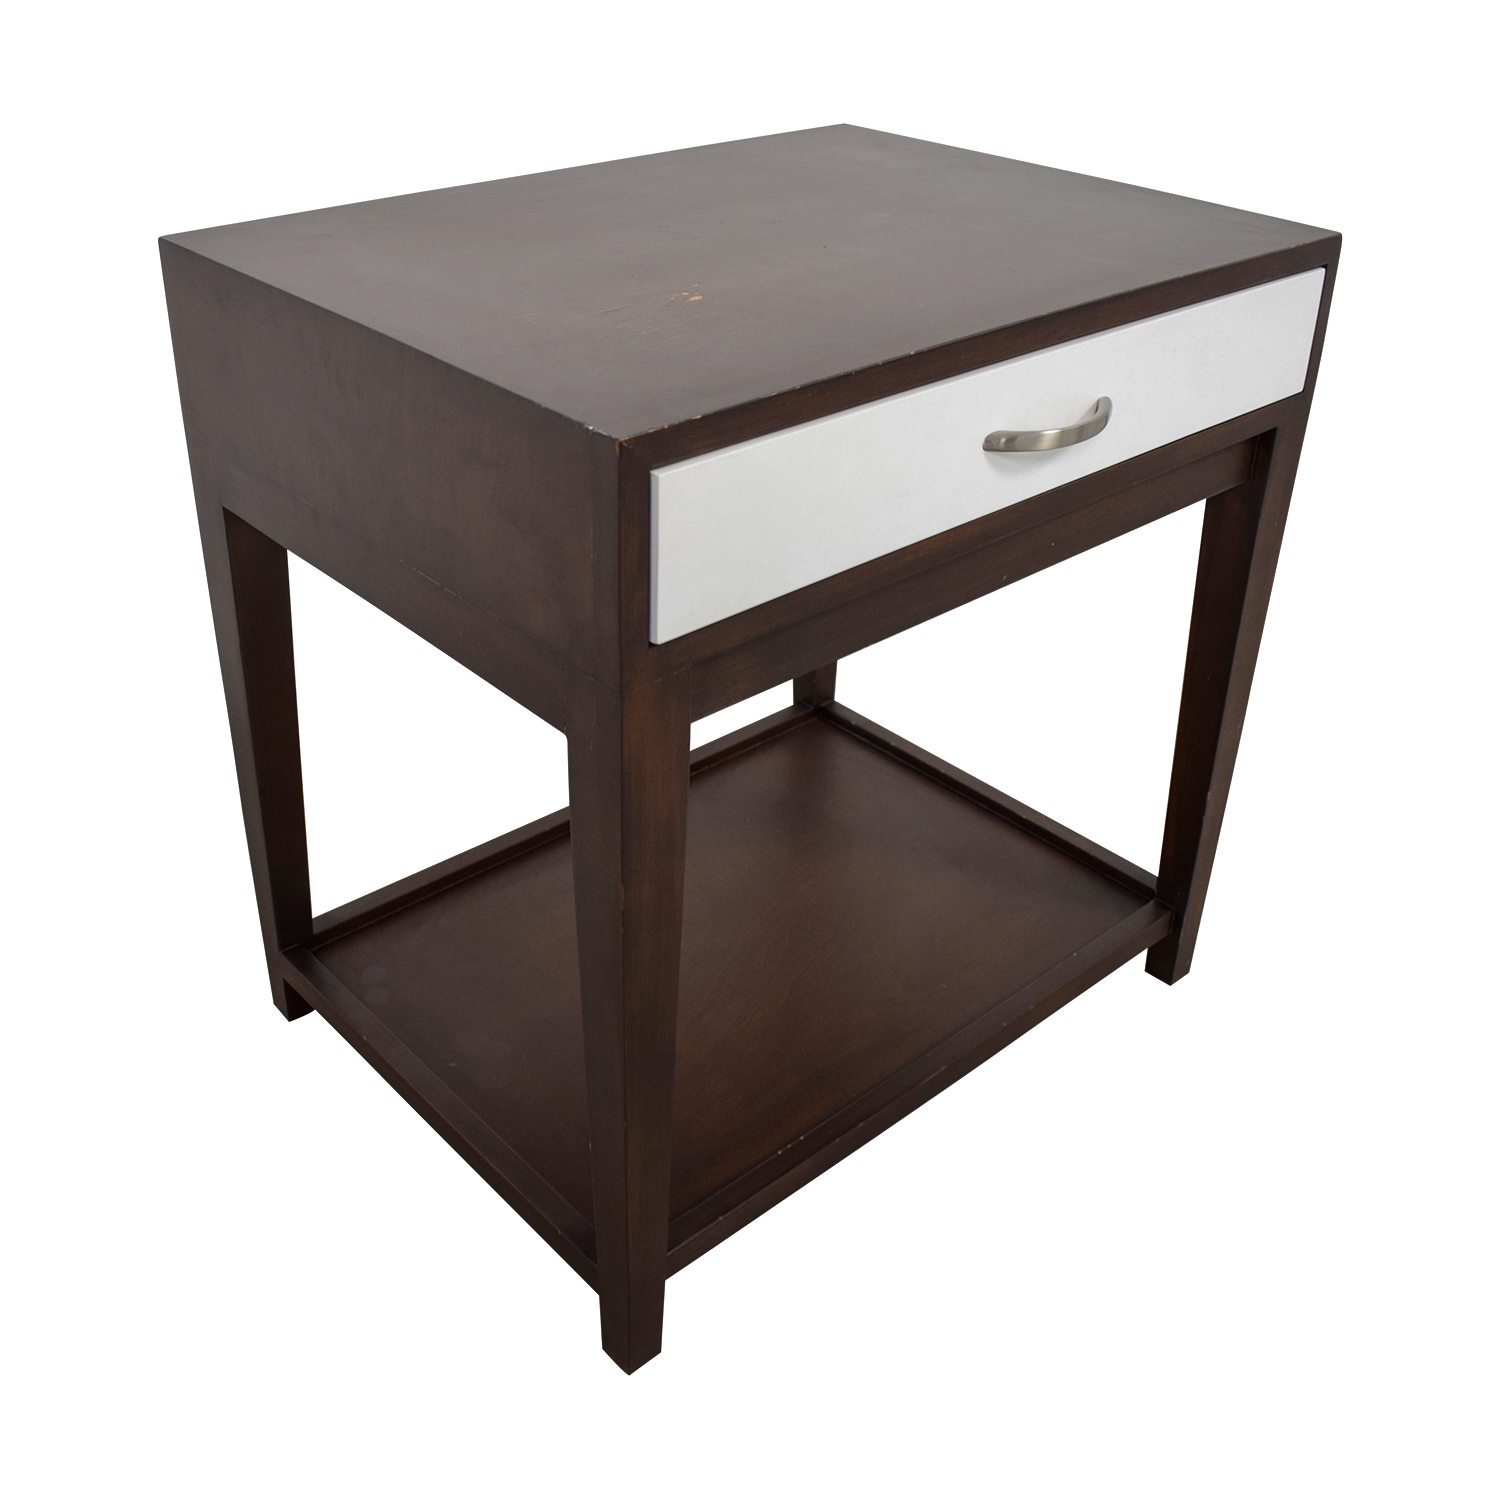 Buccola Buccola Brown and White Nightstand on sale